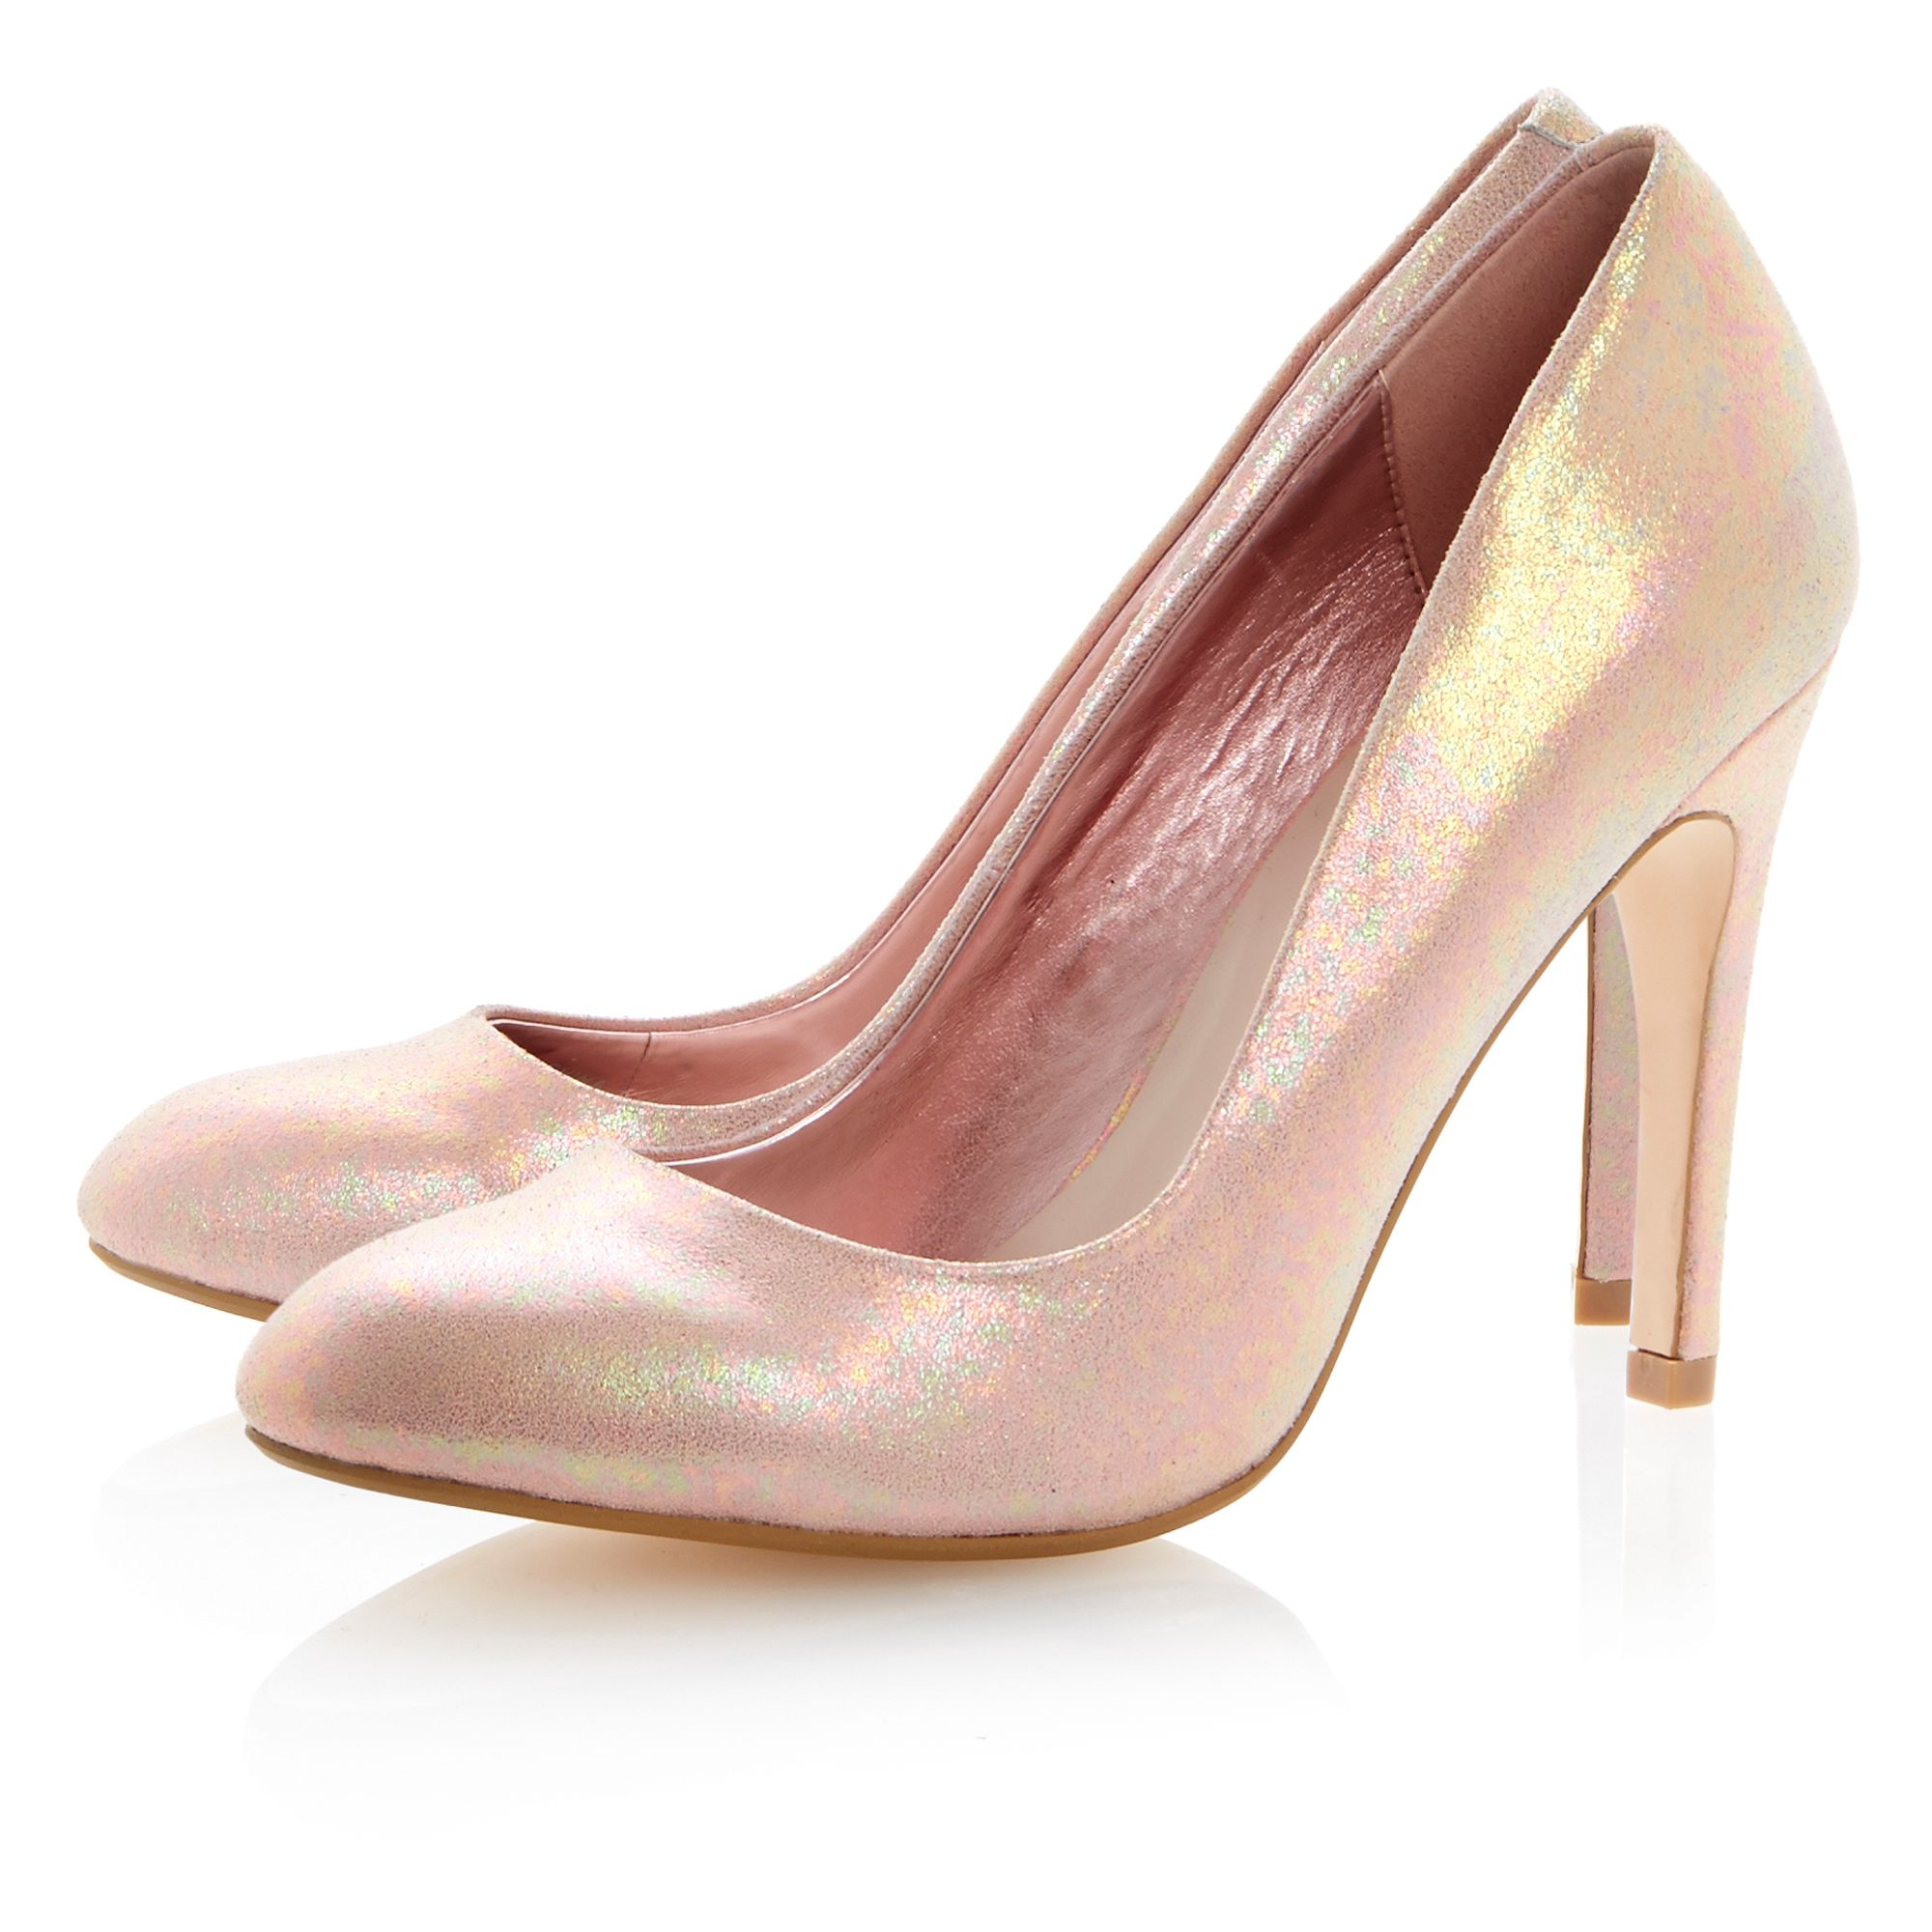 Burlesque almond toe stiletto court shoes